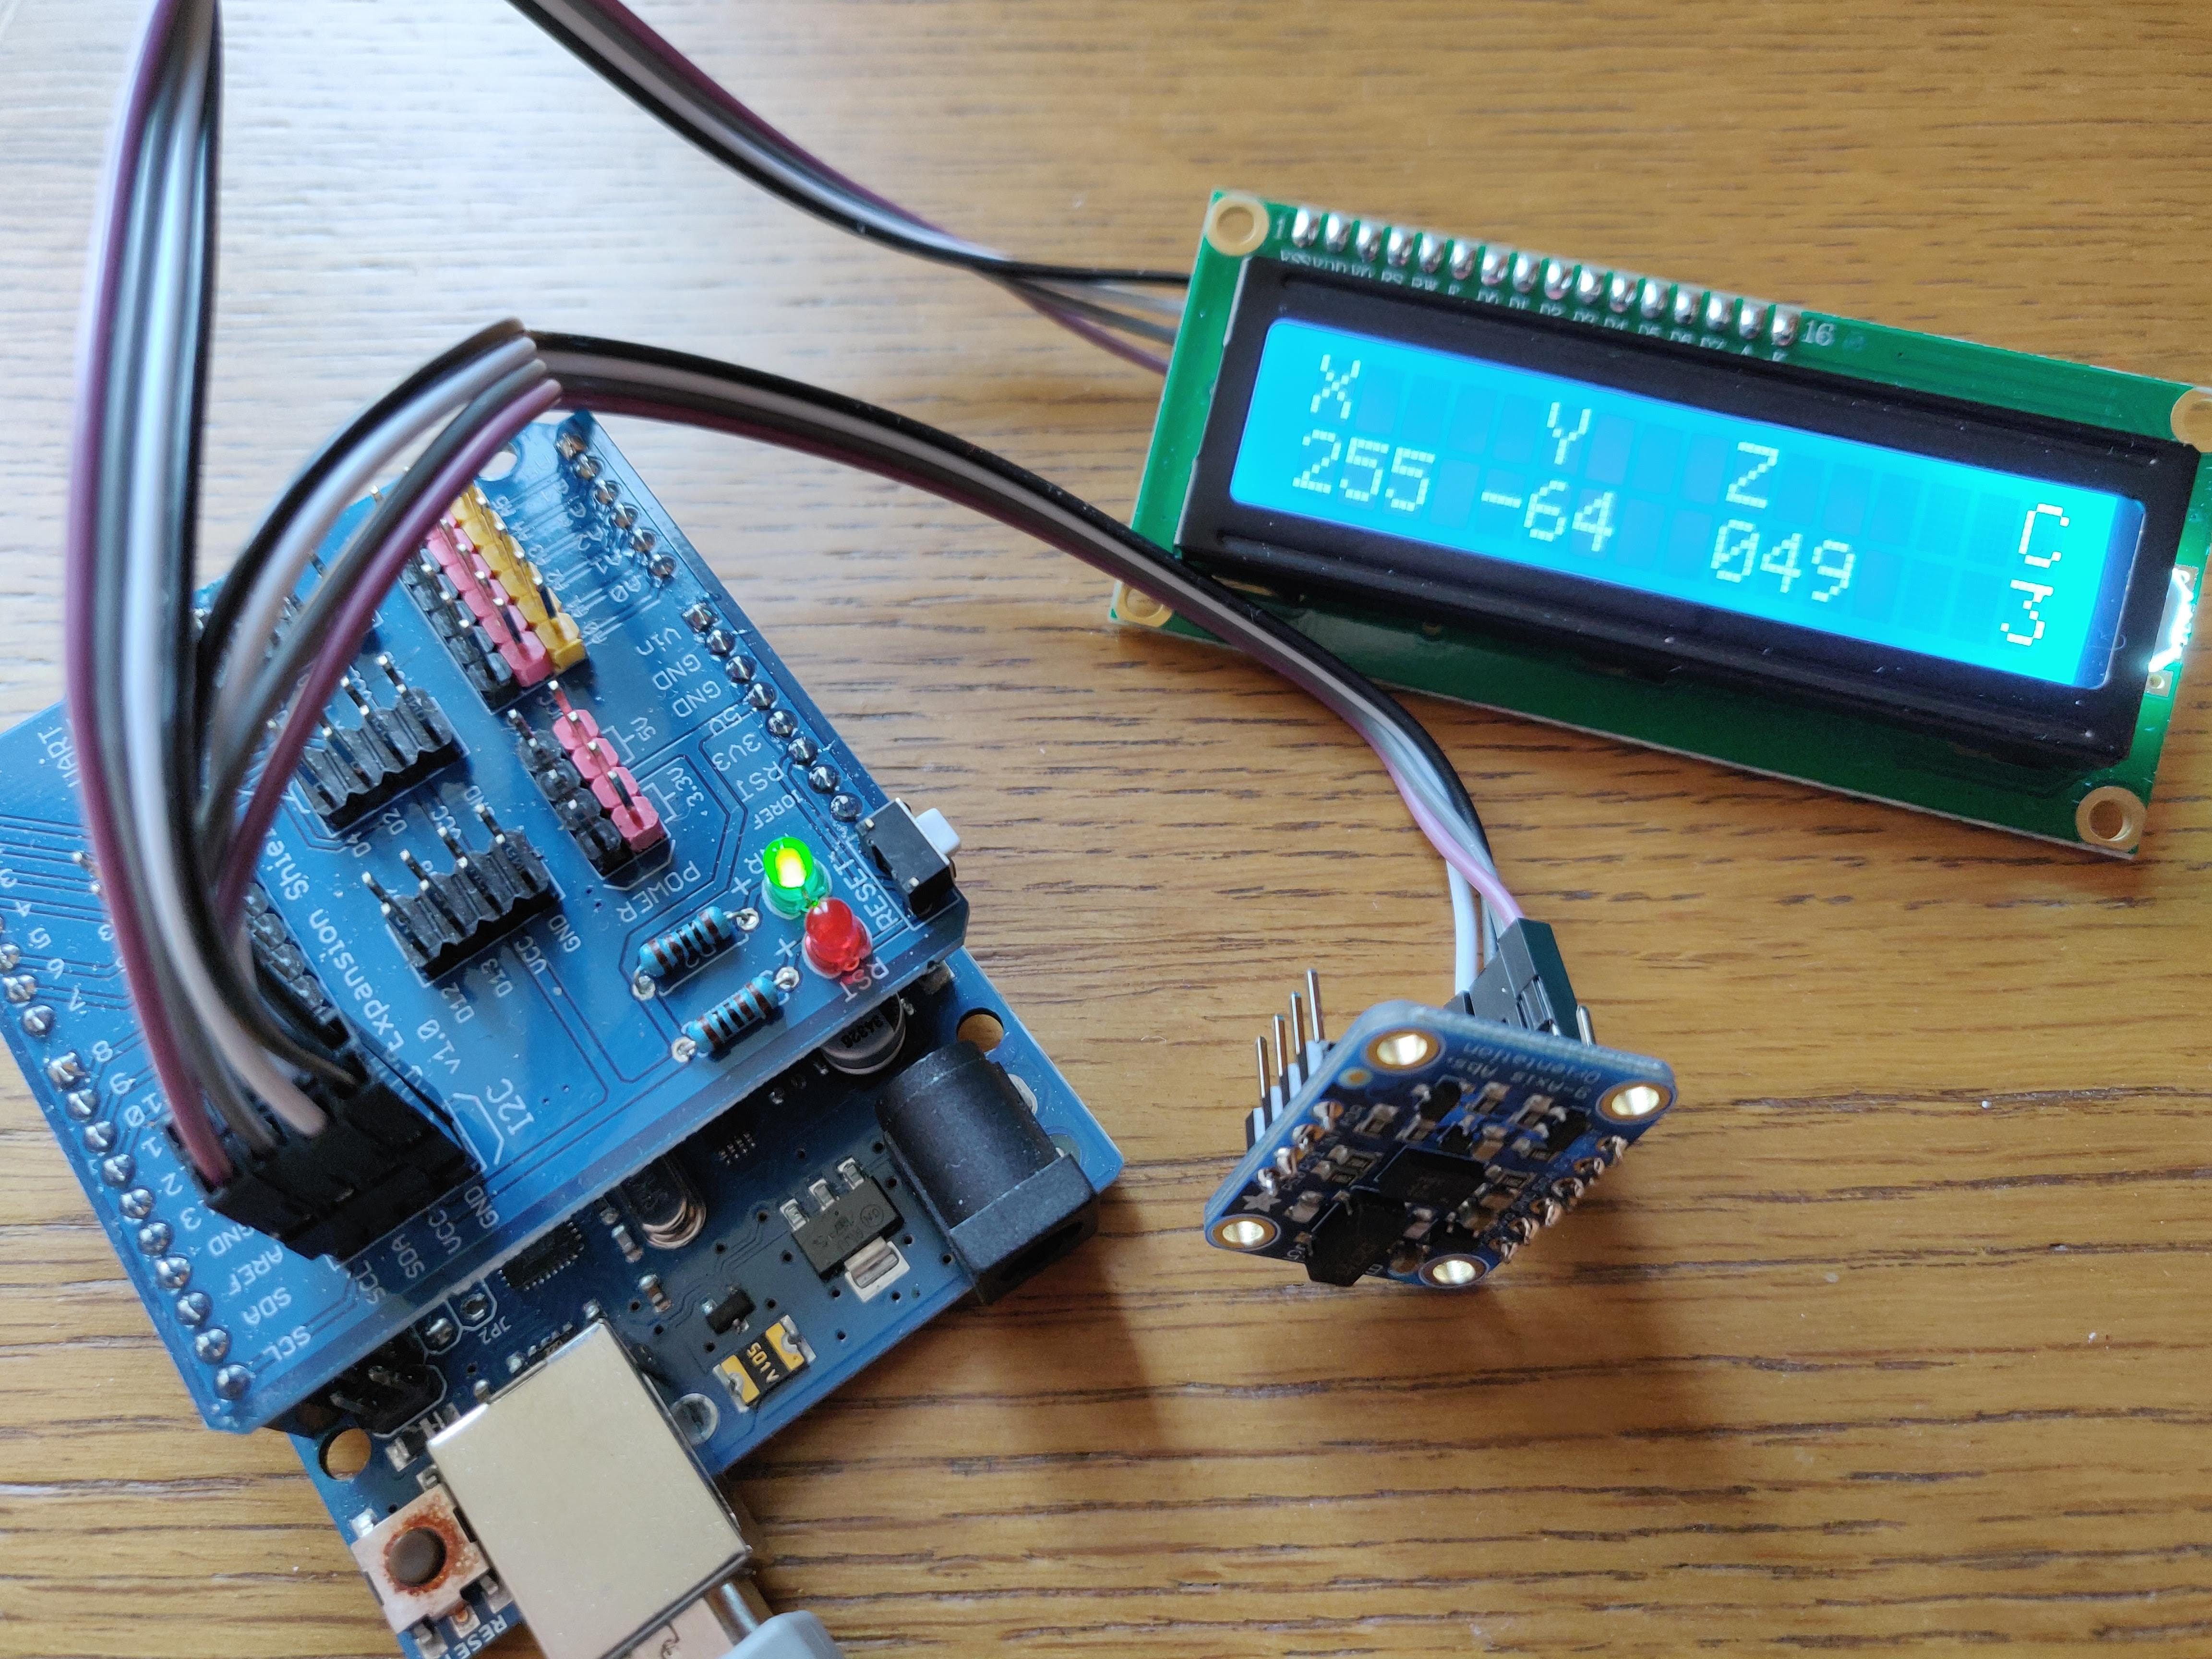 16x2 LCD screen displaying output from BNO055 absolute orientation sensor